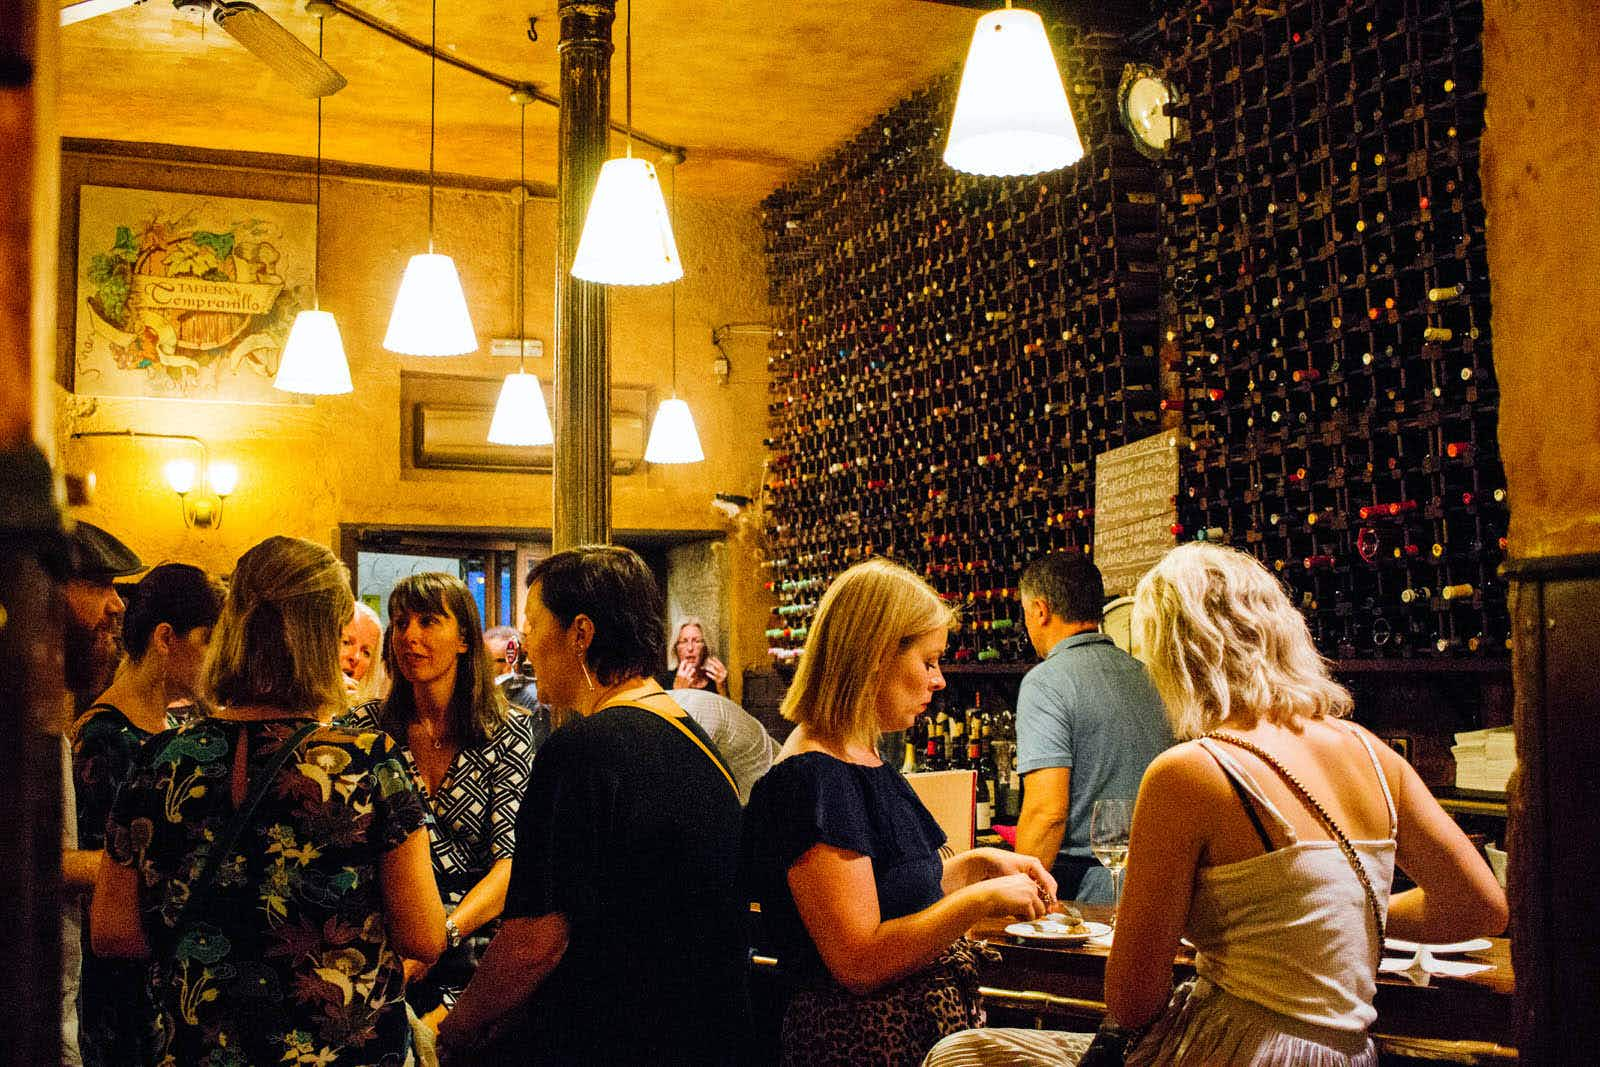 Bodegas, bars and beyond: where to drink wine in Madrid